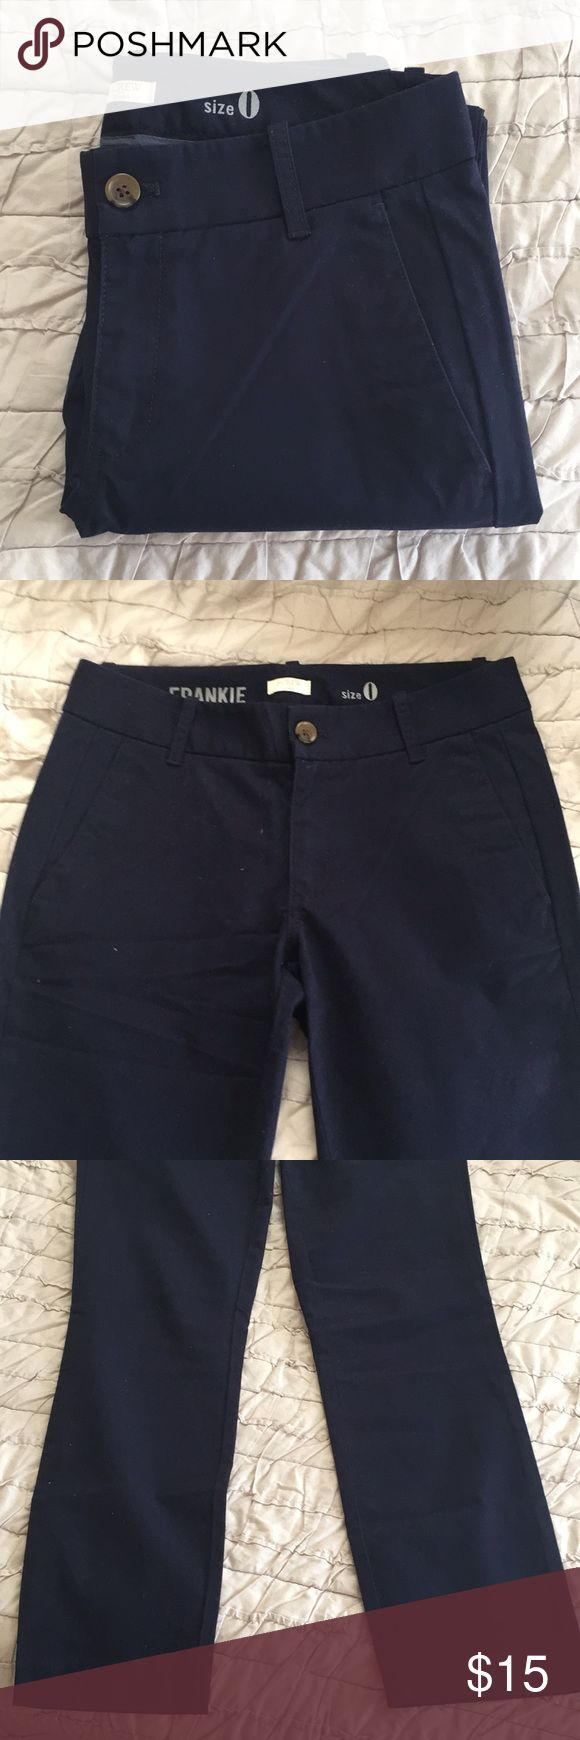 """NWOT J. Crew Frankie Chinos New without tags navy Frankie, skinny chino pants from j.crew. I bought these less then a year ago and haven't worn them. For reference, I'm about 5'4"""" and these pants are ankle length on me. They are super comfortable but just need to go to someone who will wear them! Please note the creases are just from being folded in my dresser. J. Crew Pants"""